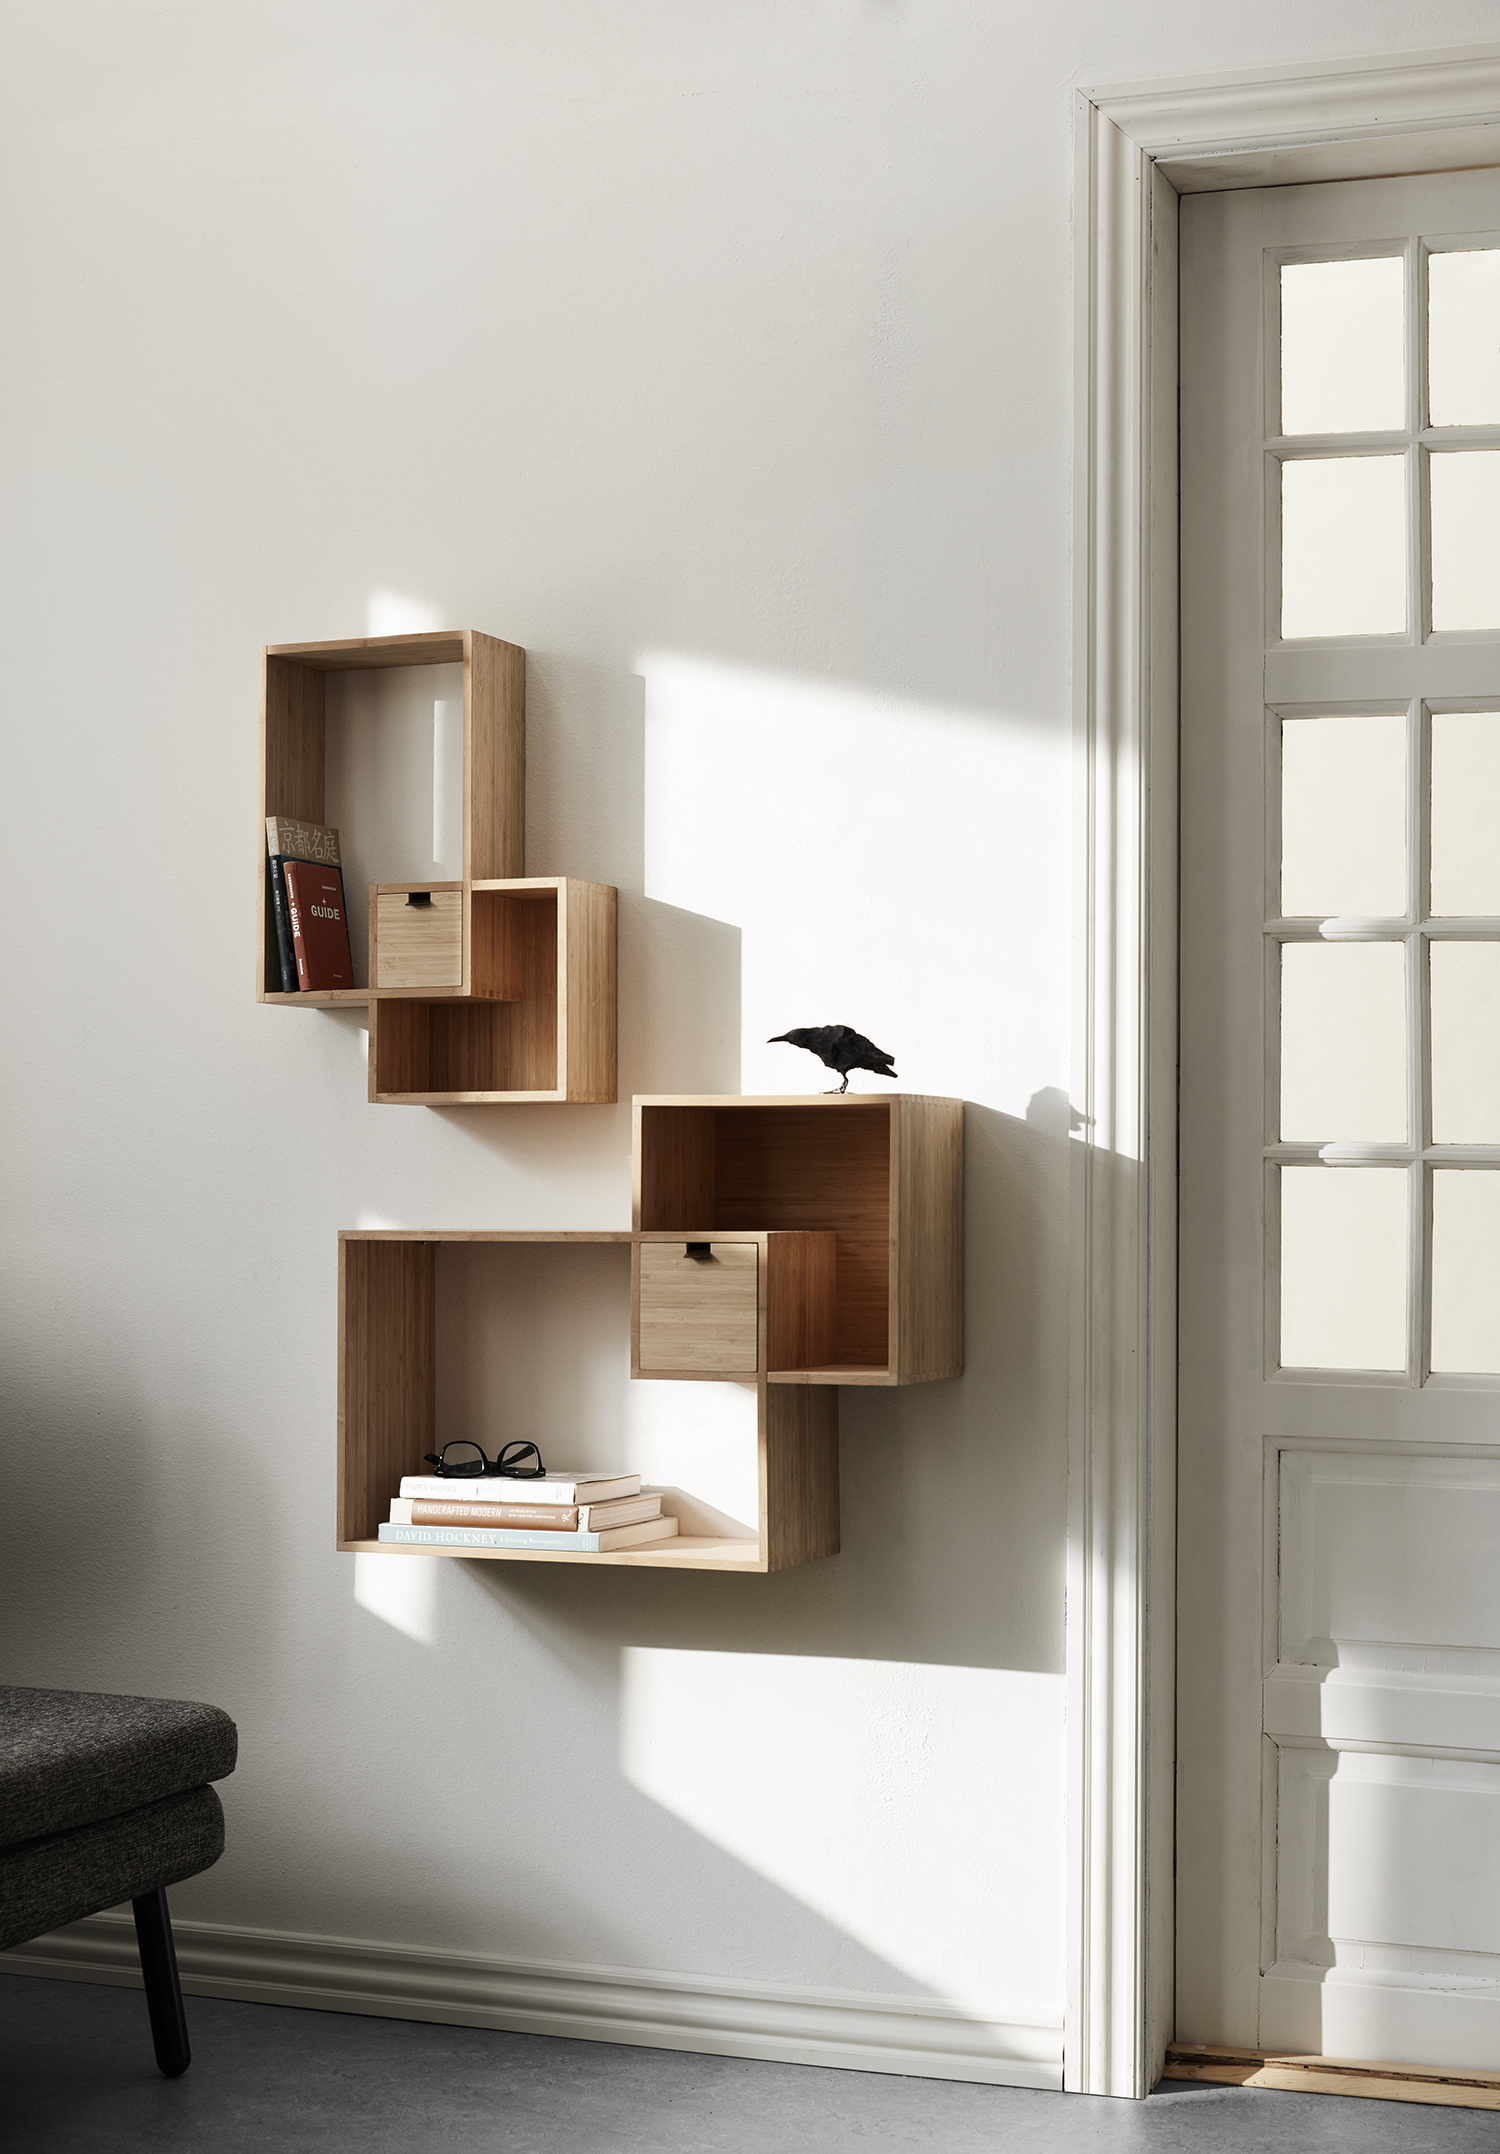 Mondrian_shelves_01.jpg